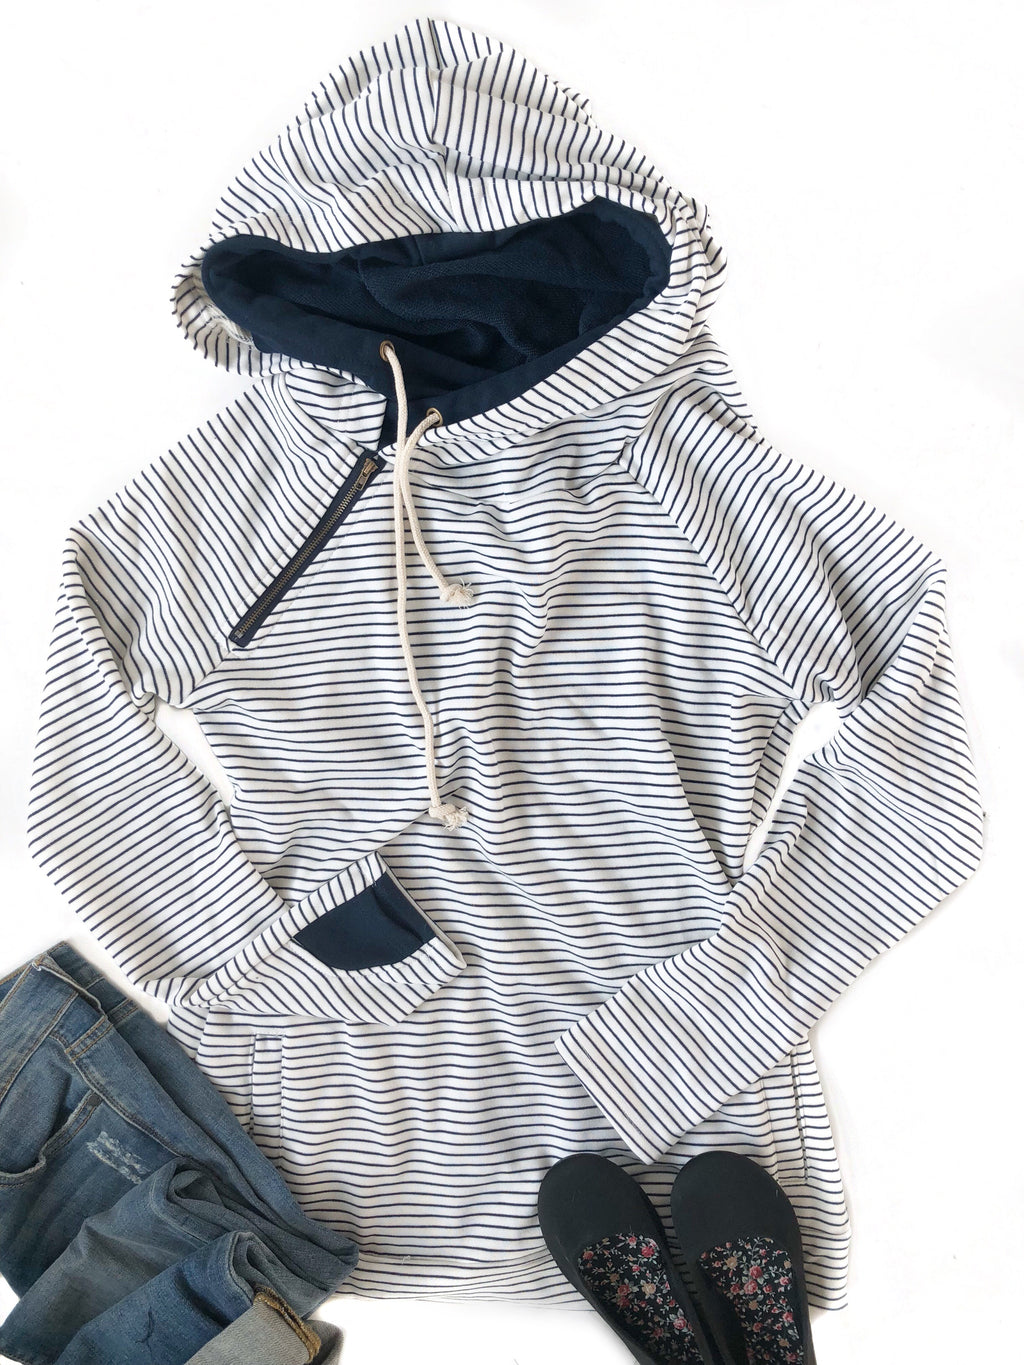 Mad About Stripes Double Hooded Sweatshirt in Striped Navy